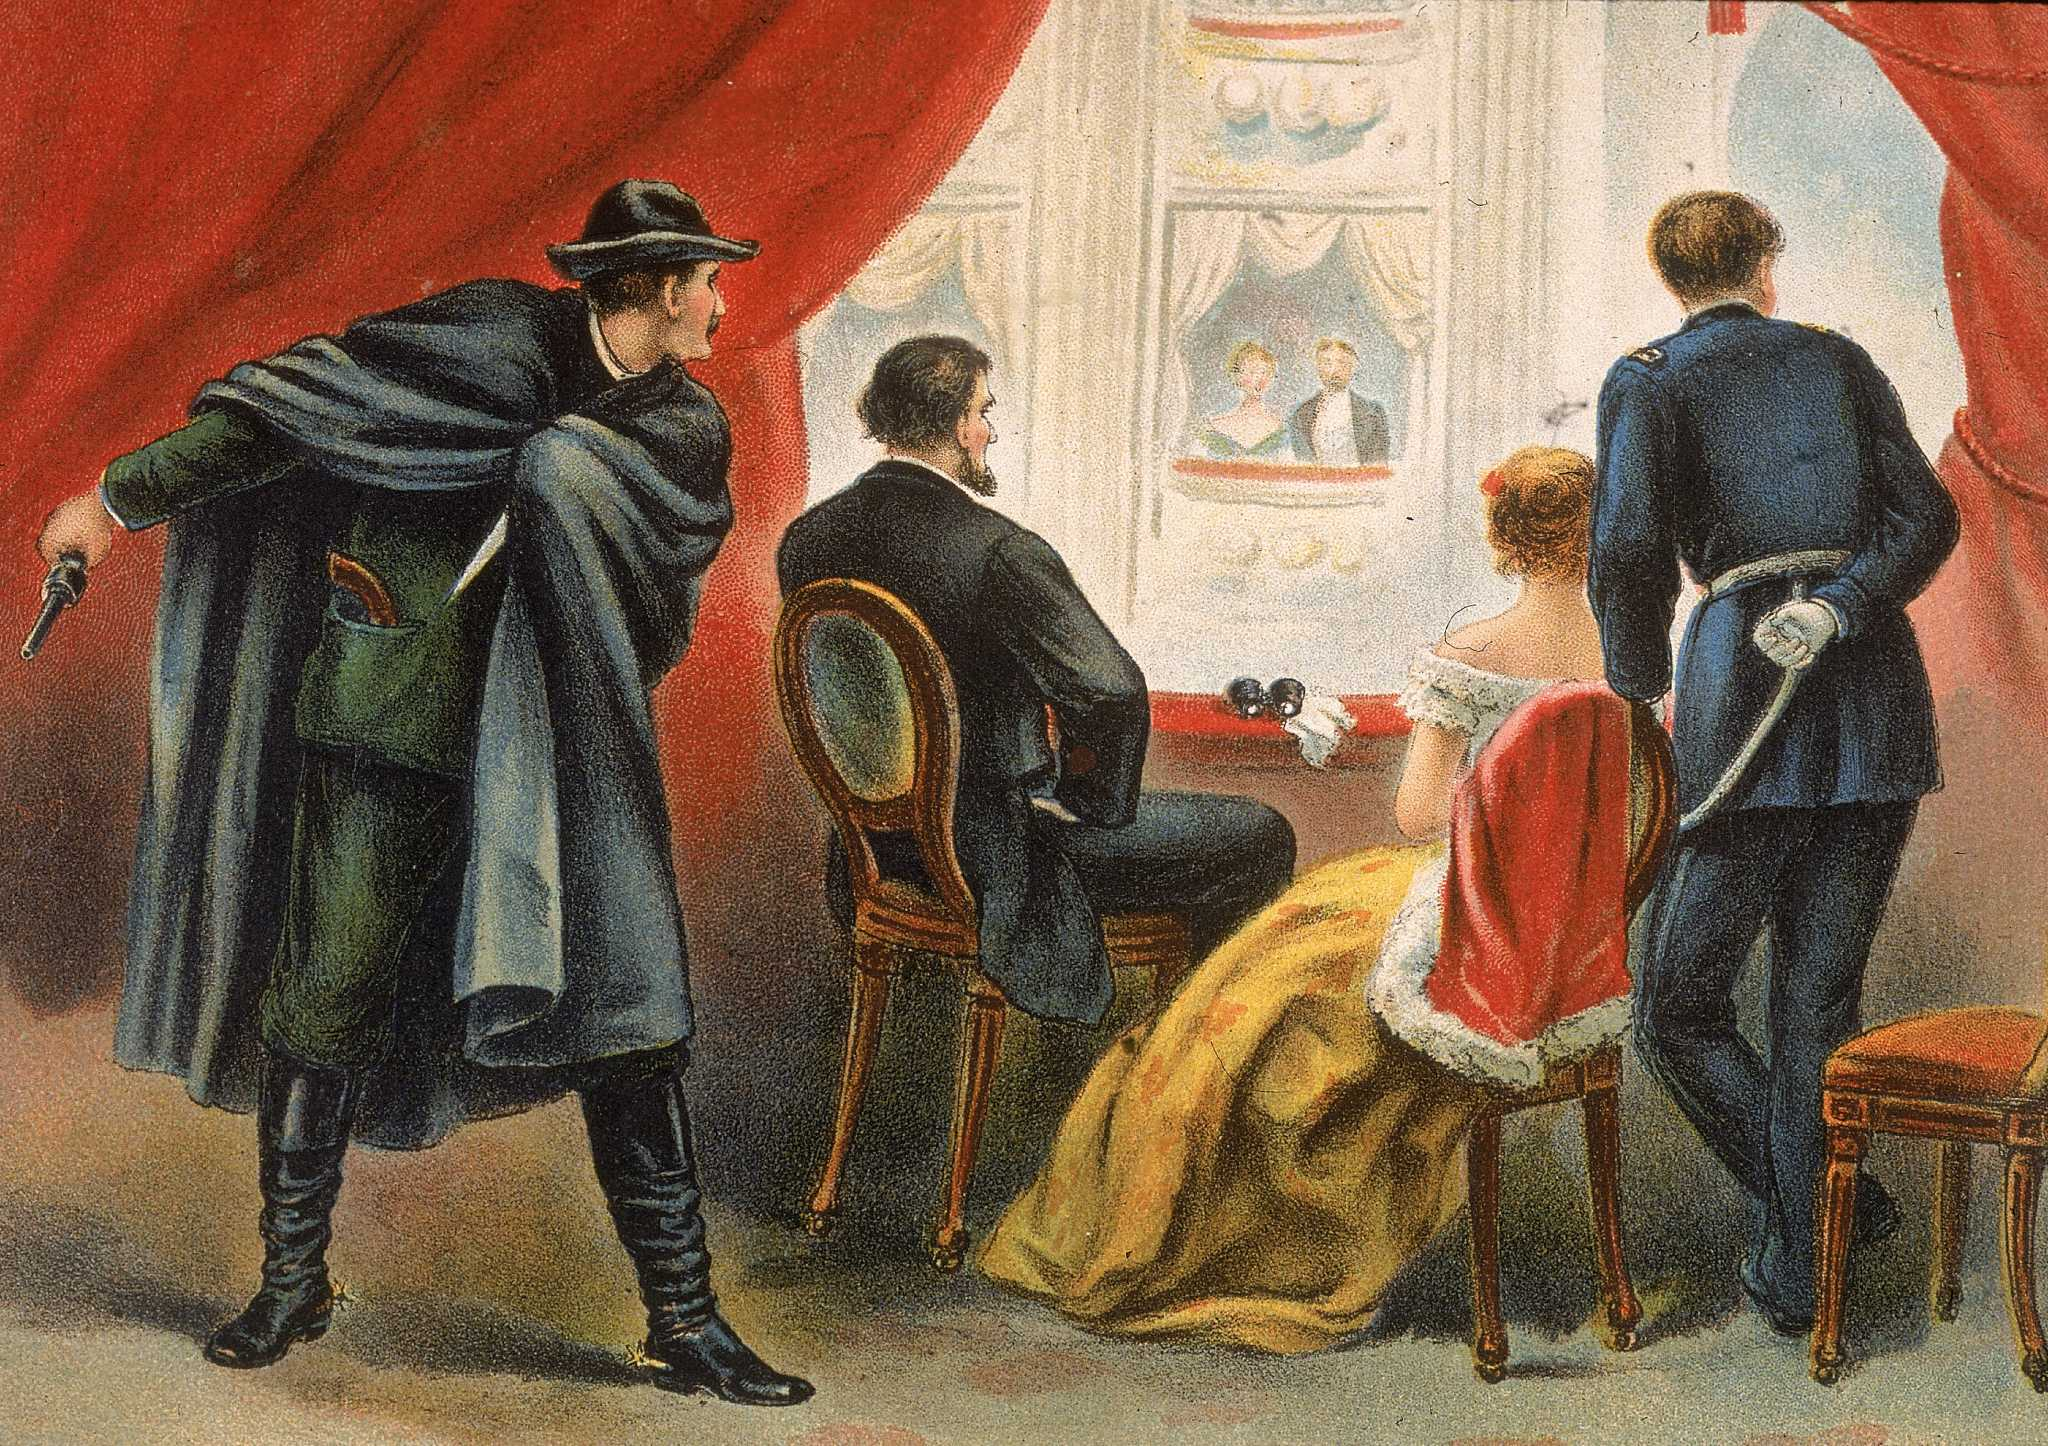 Abraham Lincoln S Assassination 150 Years Ago